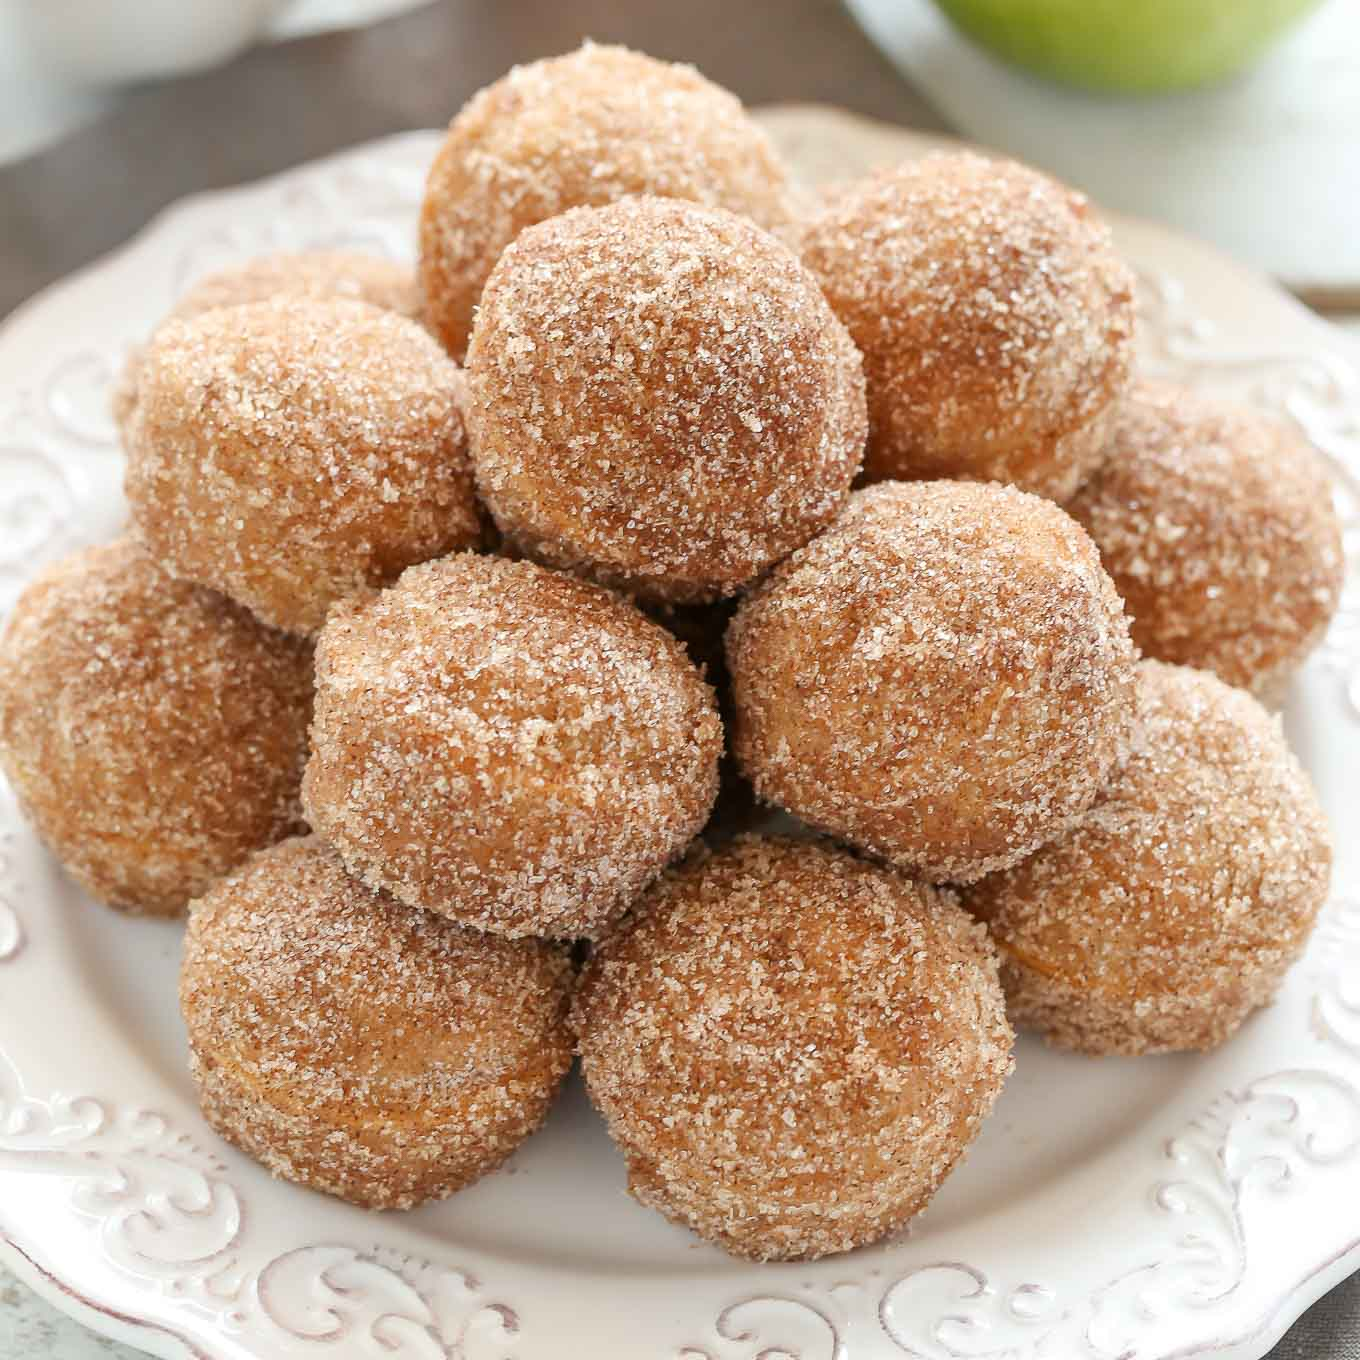 An easy recipe for Baked Apple Cider Donut Holes coated in either cinnamon and sugar or an apple cider glaze. Plus instructions for how to make Baked Apple Cider Donuts too!